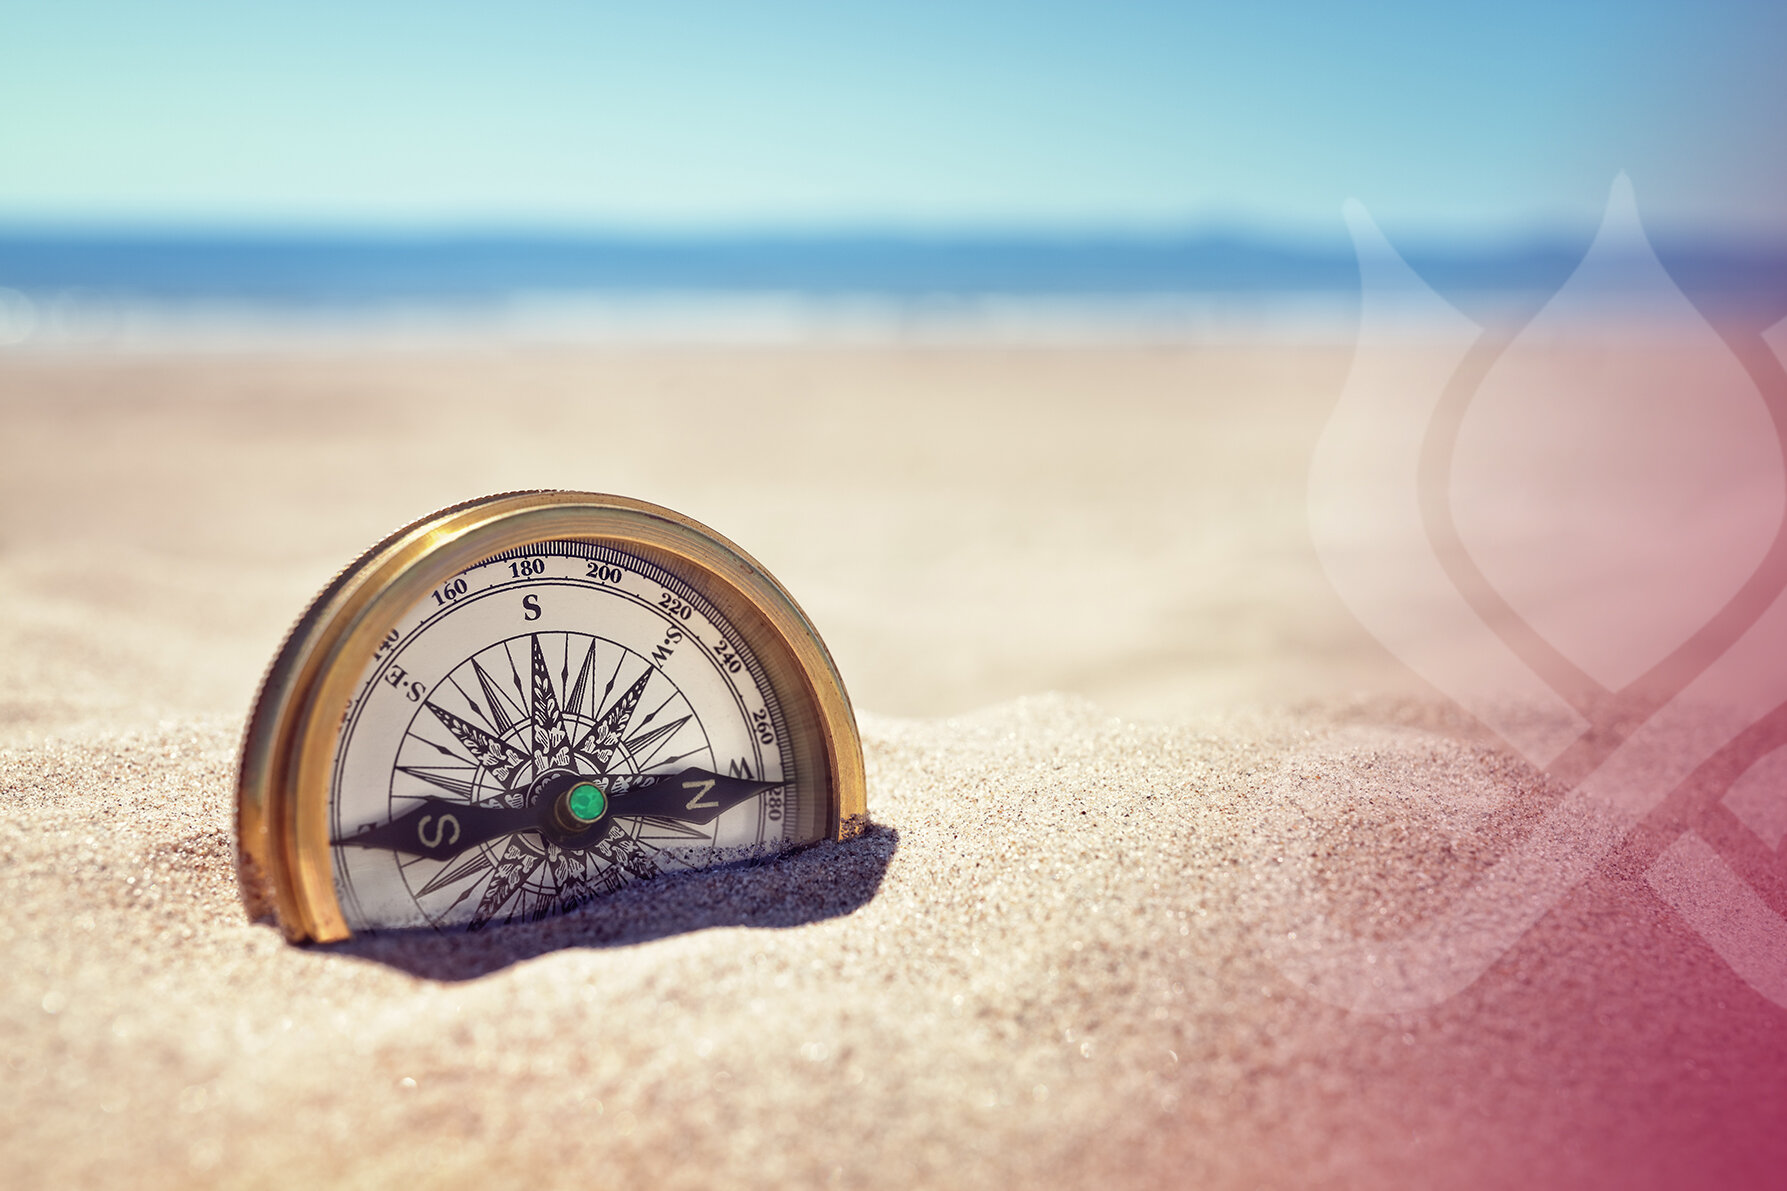 Blog-compass-on-the-beach-with-sand-and-sea.jpg